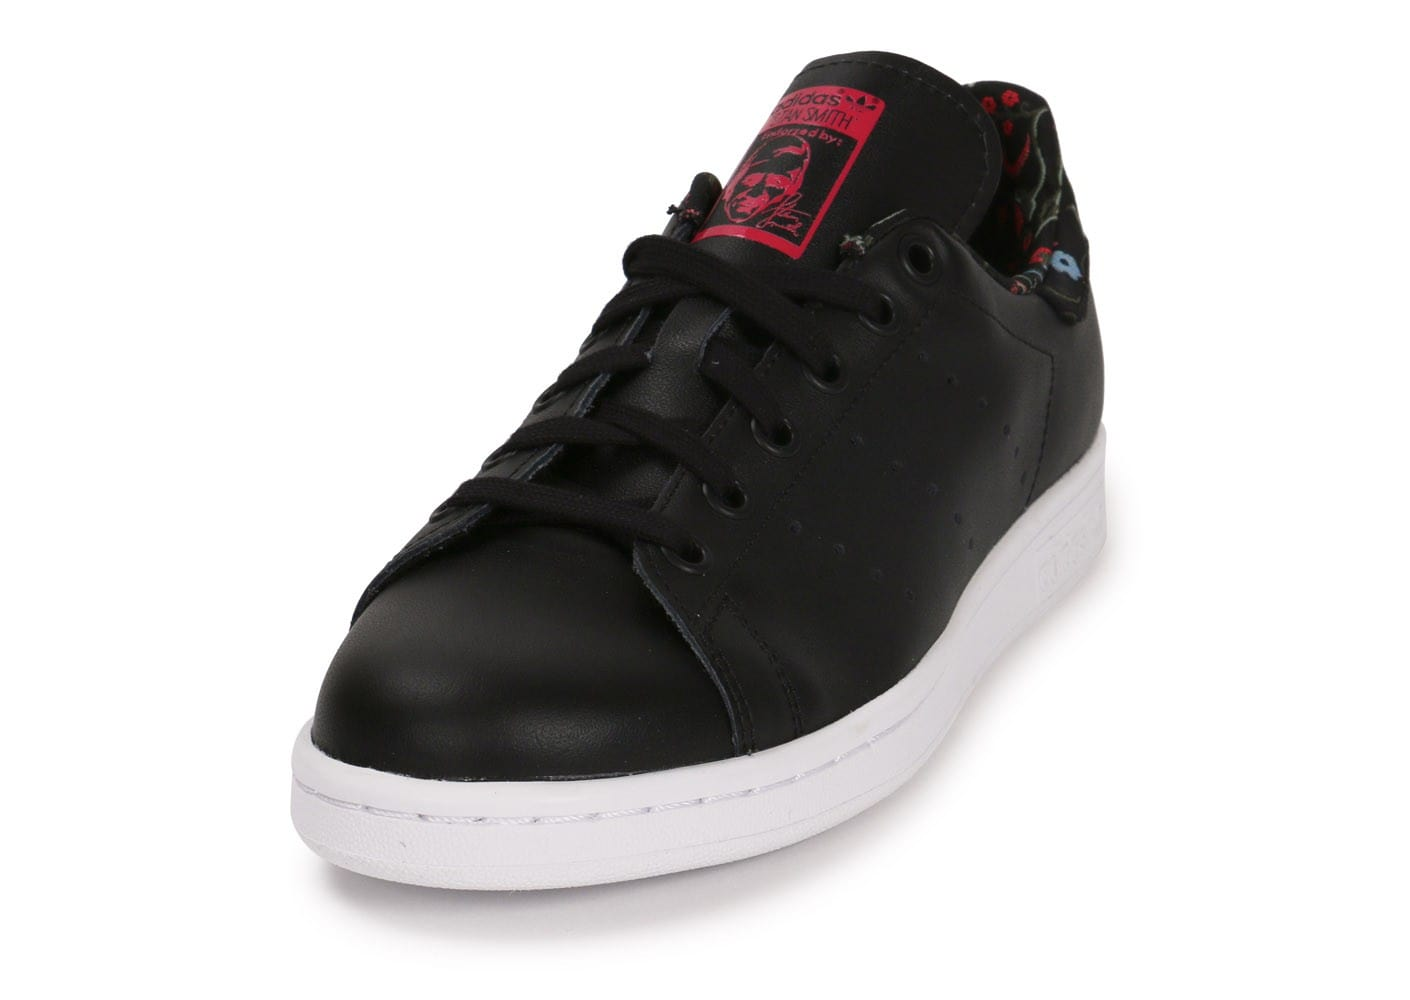 adidas Stan Smith Flowers noire Chaussures adidas Chausport